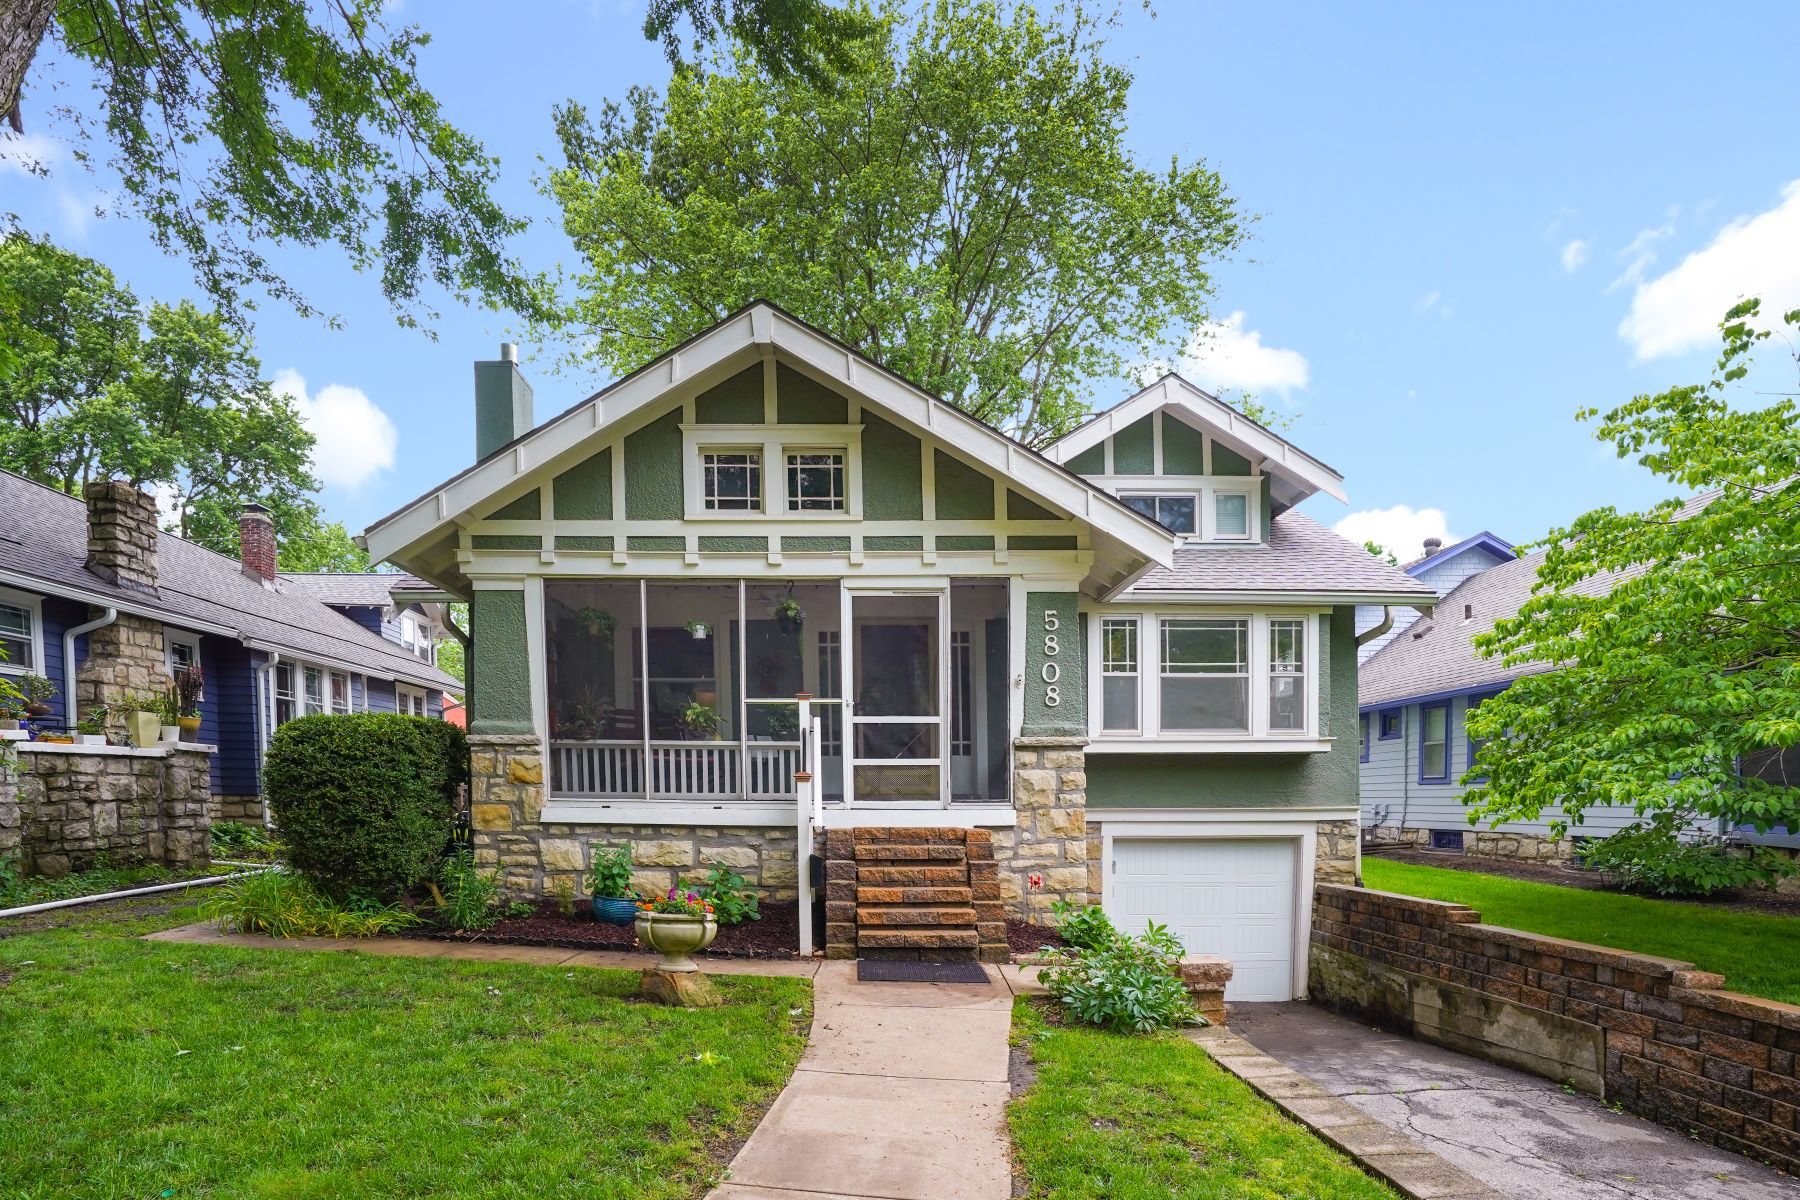 Single Family Homes for Sale at Completely Updated Brookside Bungalow 5808 Holmes Street Kansas City, Missouri 64110 United States